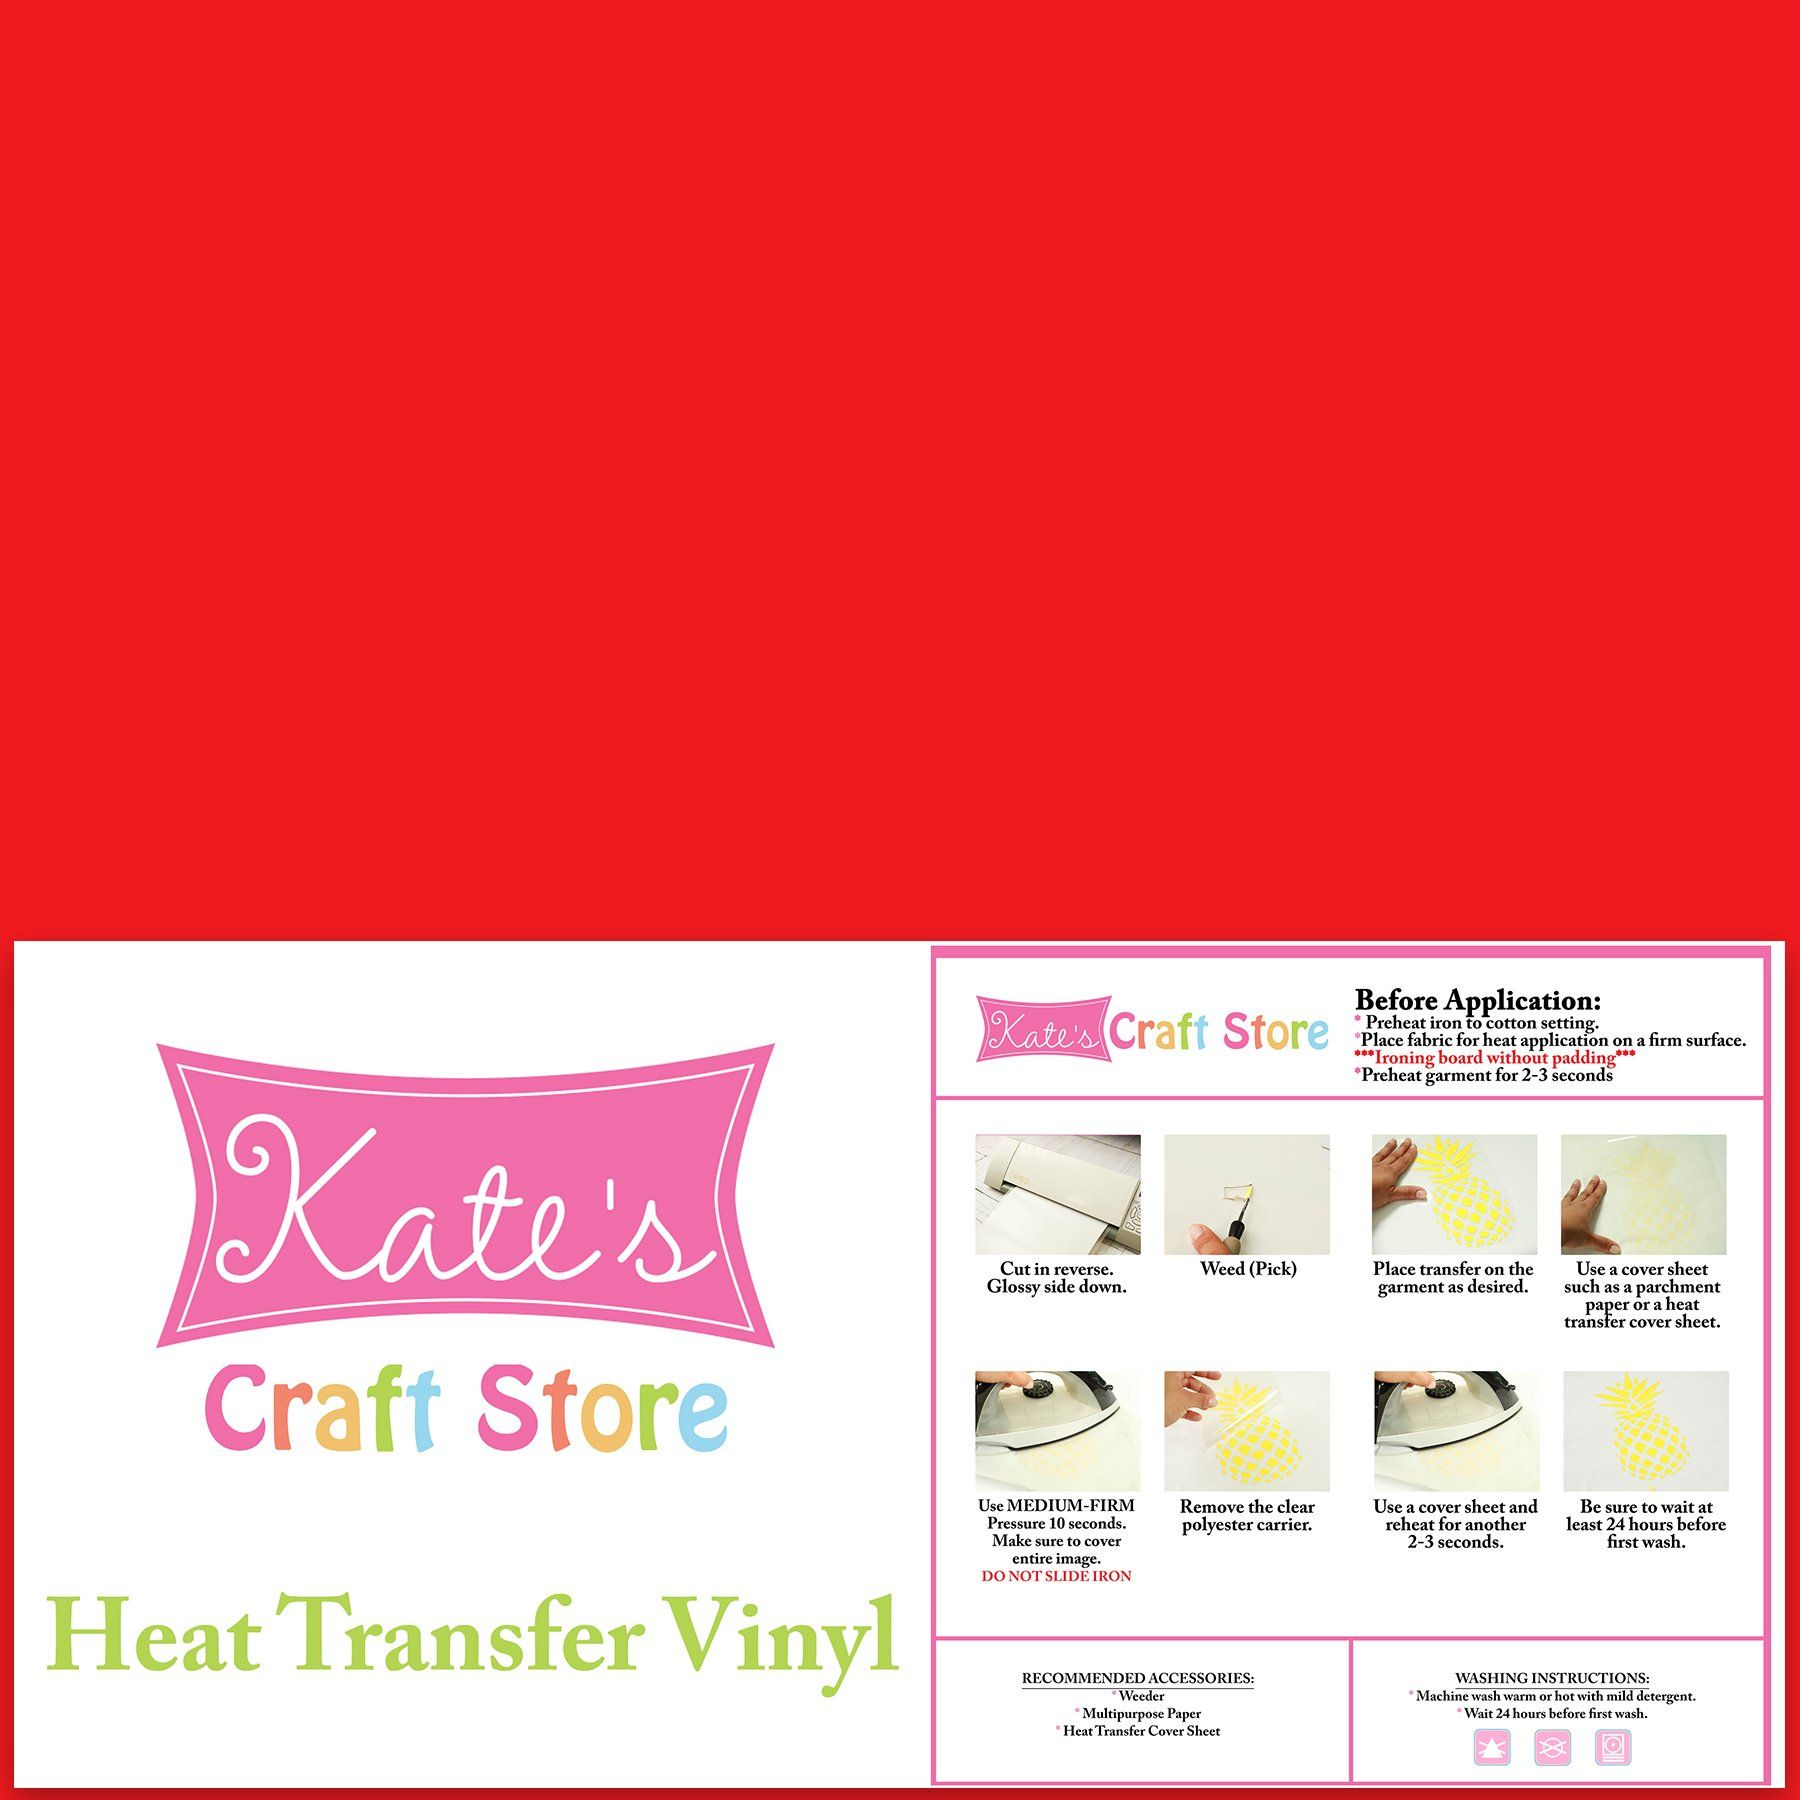 12 X 15 5 Pack Of Red Heat Transfer Vinyl Sheets Htv Ad Pack Sponsored Red Heat Sheets Heat Transfer Vinyl Heat Transfer Vinyl Sheets